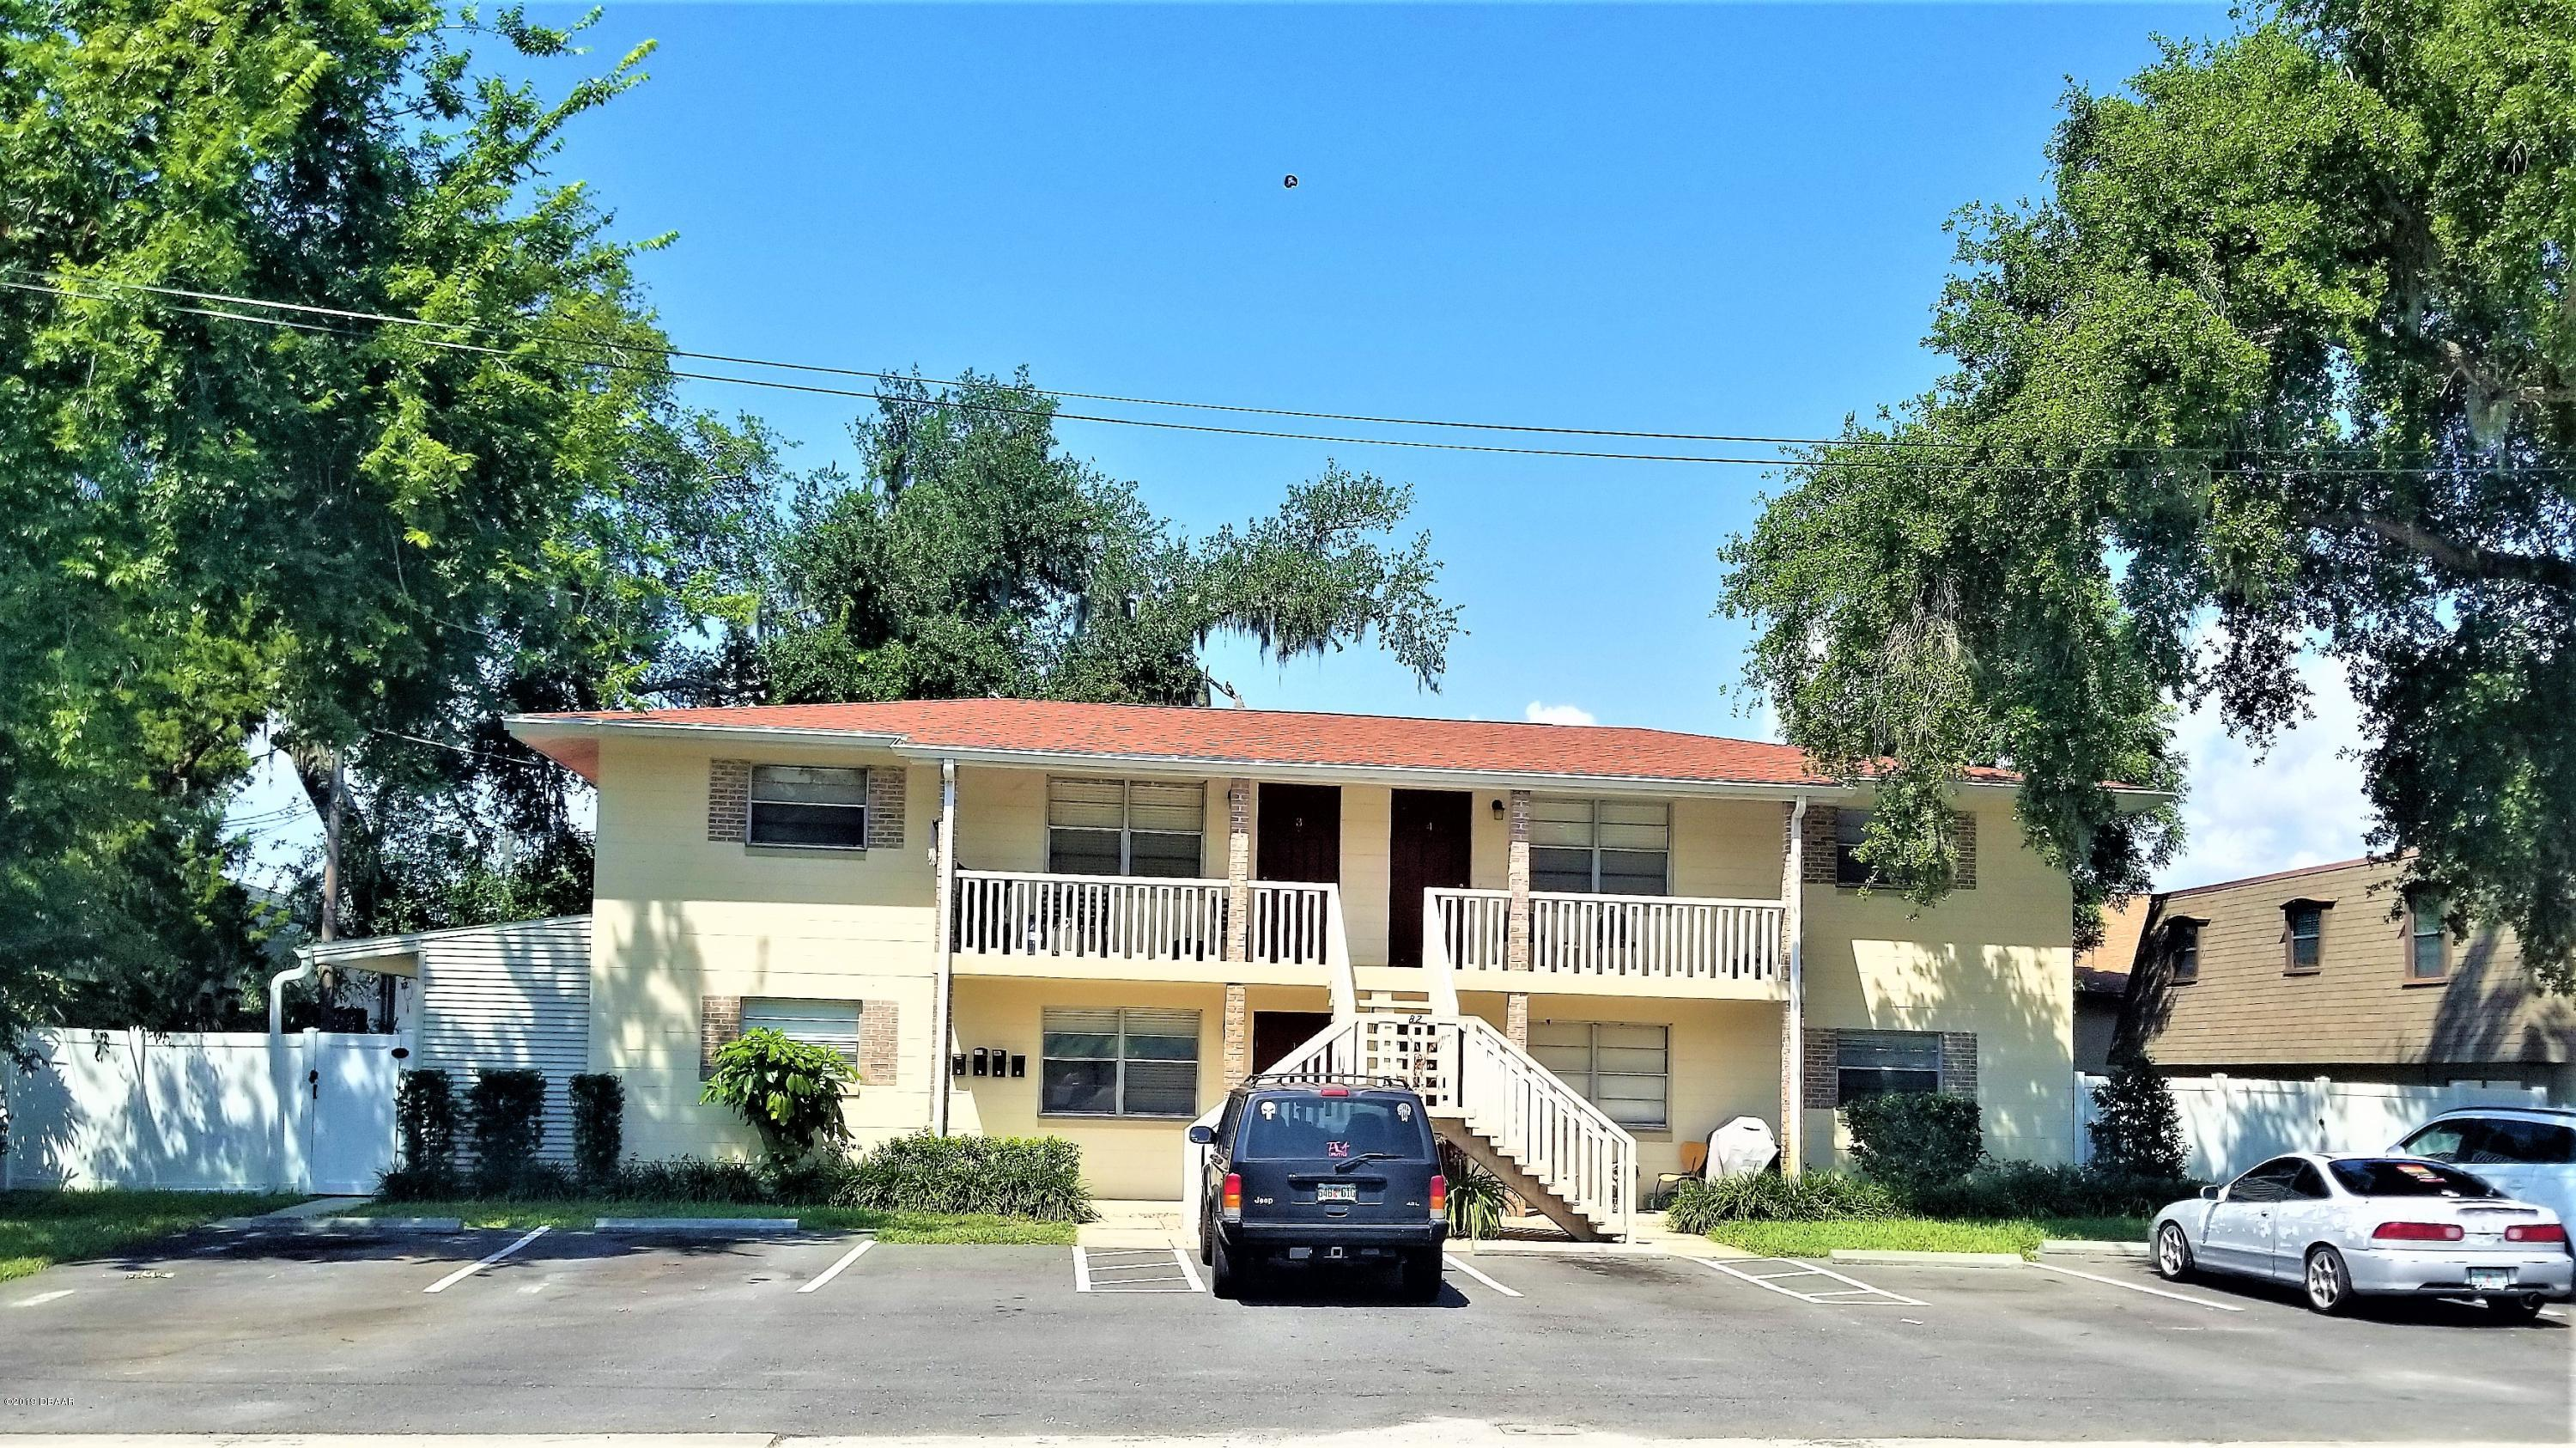 820 State Ave, Holly Hill, Florida